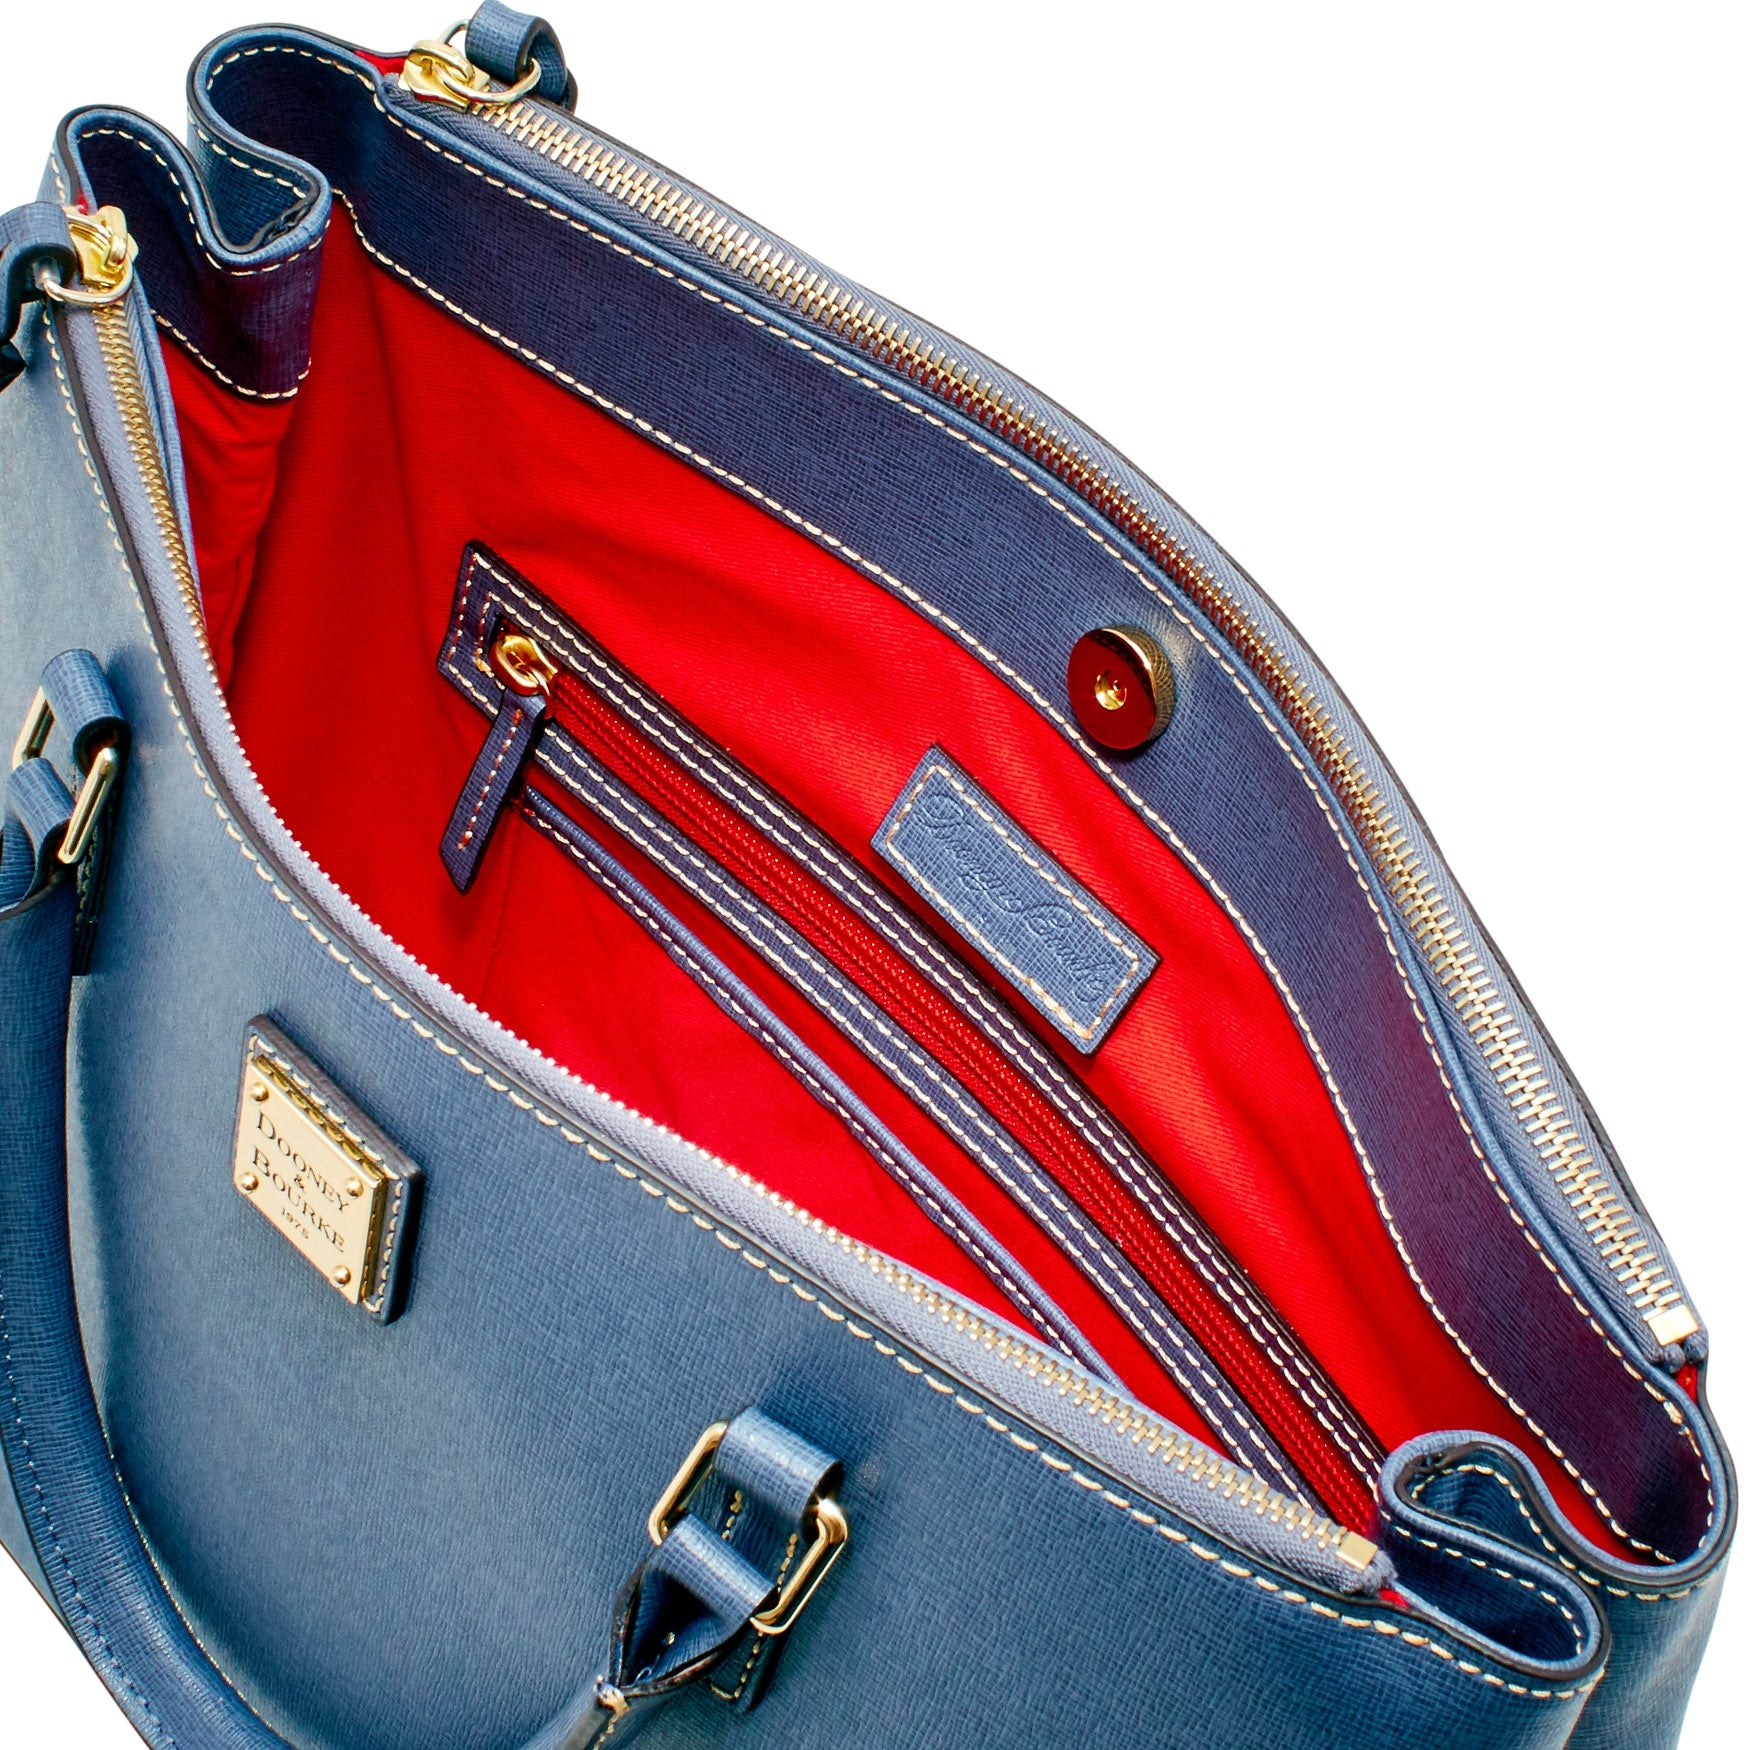 f9d992a4d Shop Dooney   Bourke Saffiano Willa Zip Satchel (Introduced by Dooney    Bourke at  298 in Feb 2018) - Free Shipping Today - Overstock - 20122041